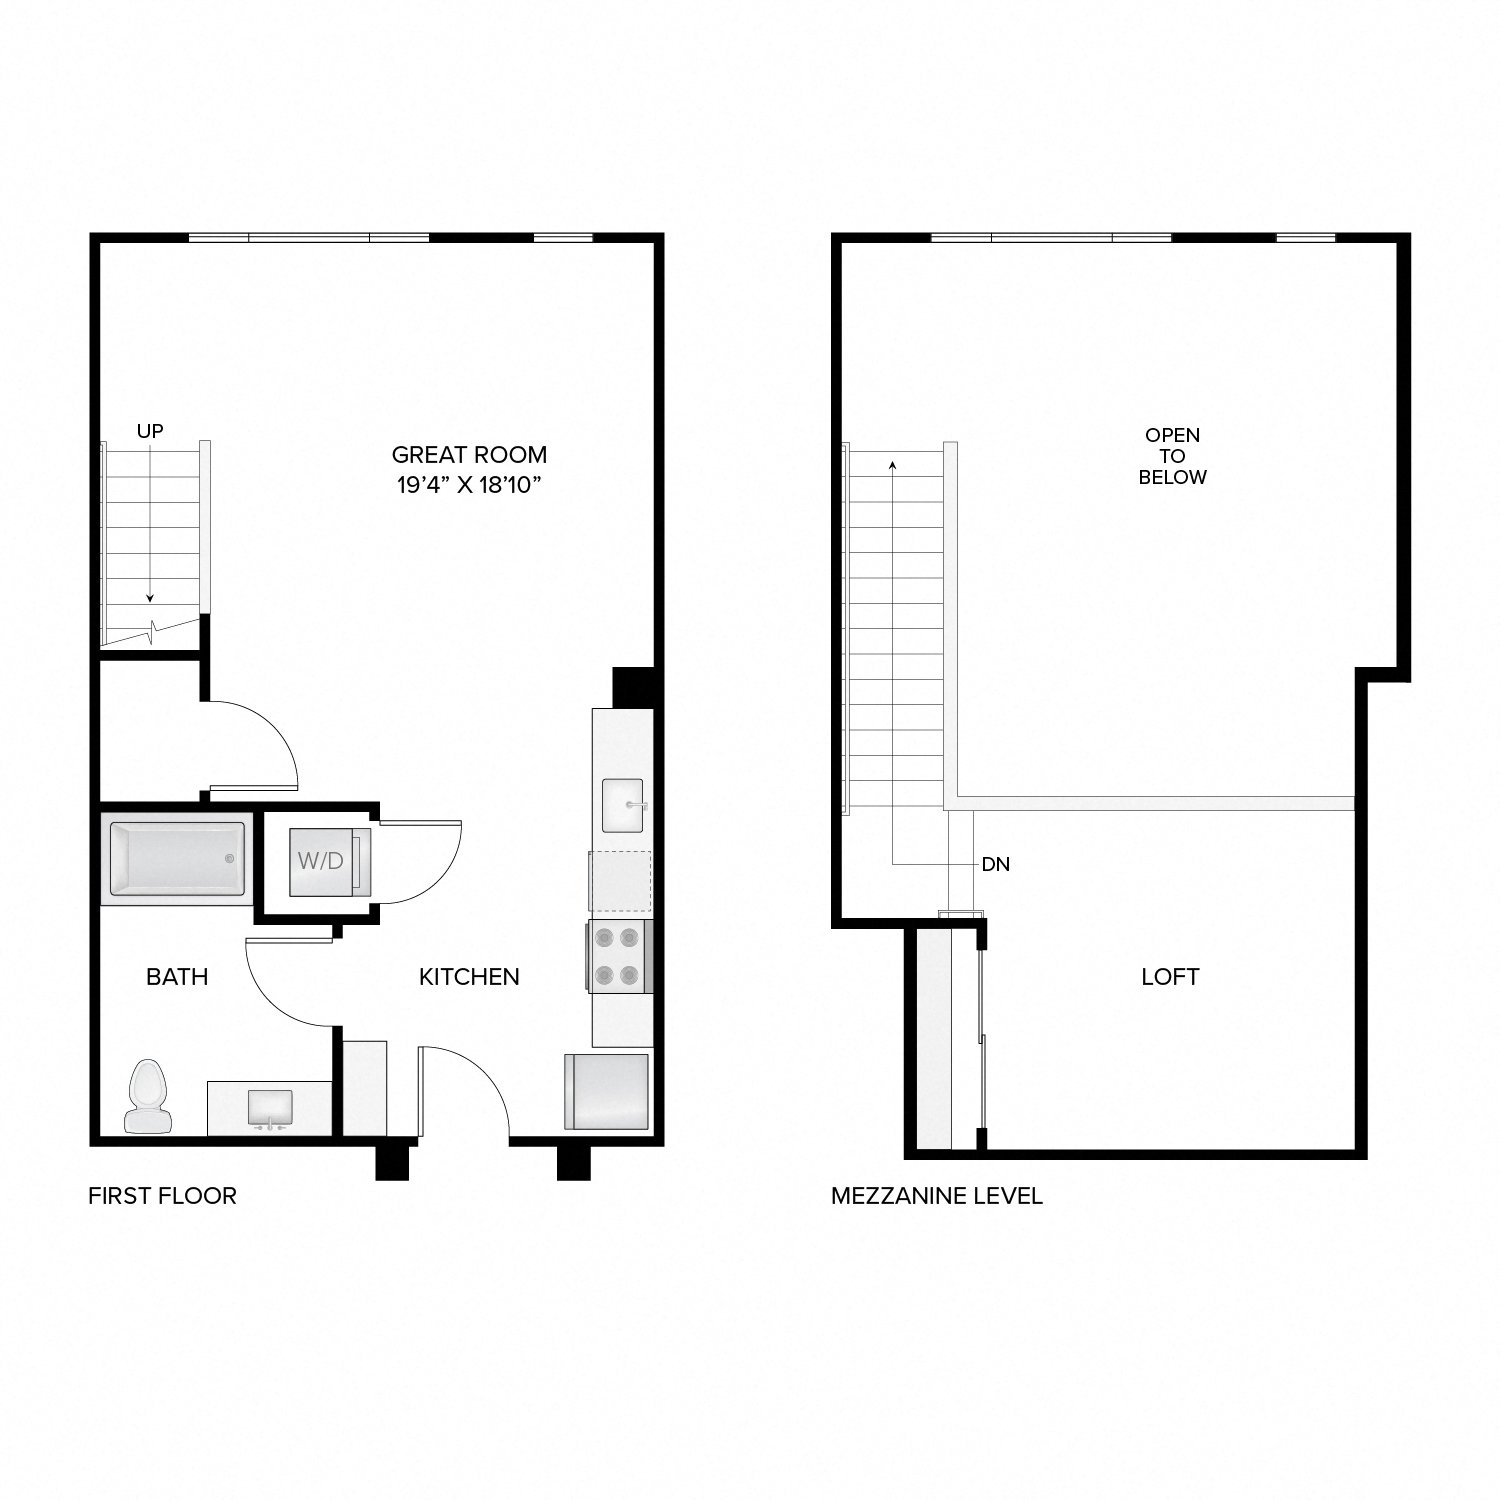 Diagram of the Harrison Loft floor plan. Studio apartment with one bathroom, an open kitchen and living area, a loft, and a washer-dryer.